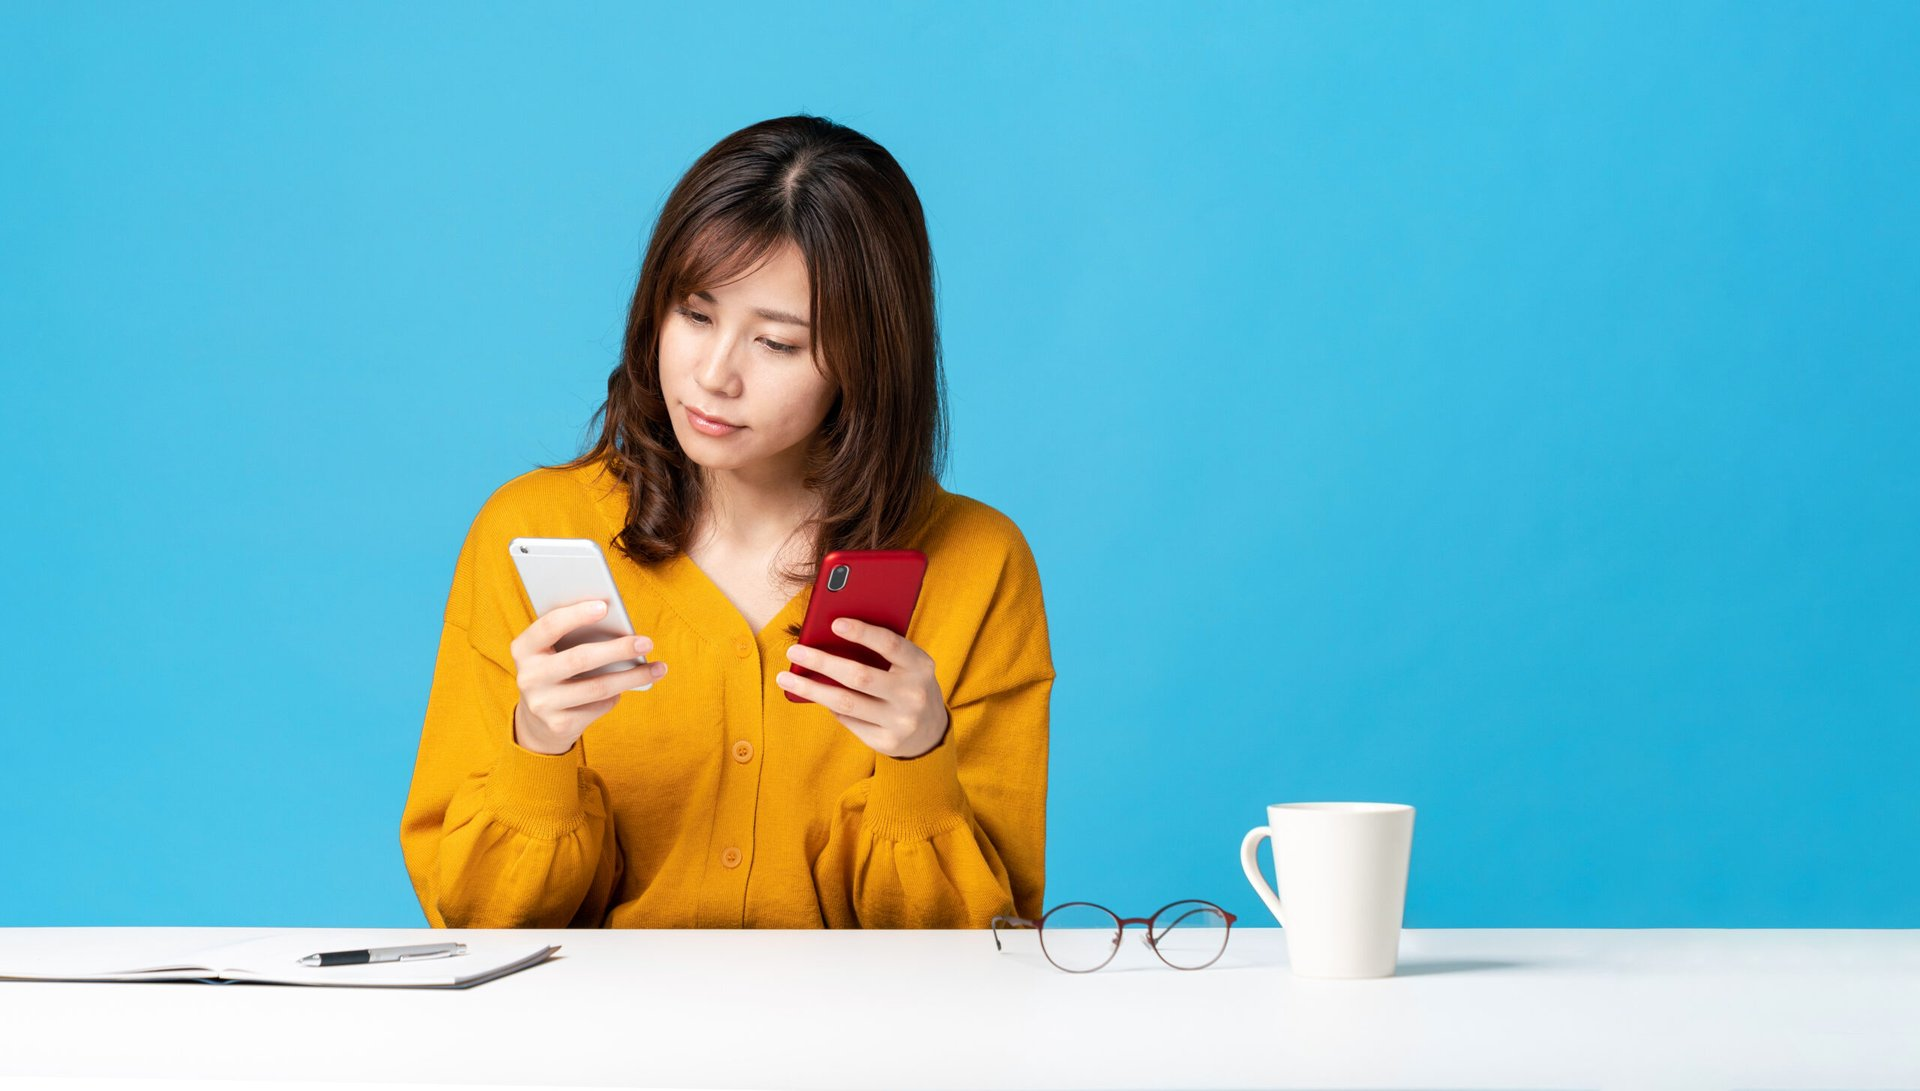 Woman comparing two phones or cellphone plans